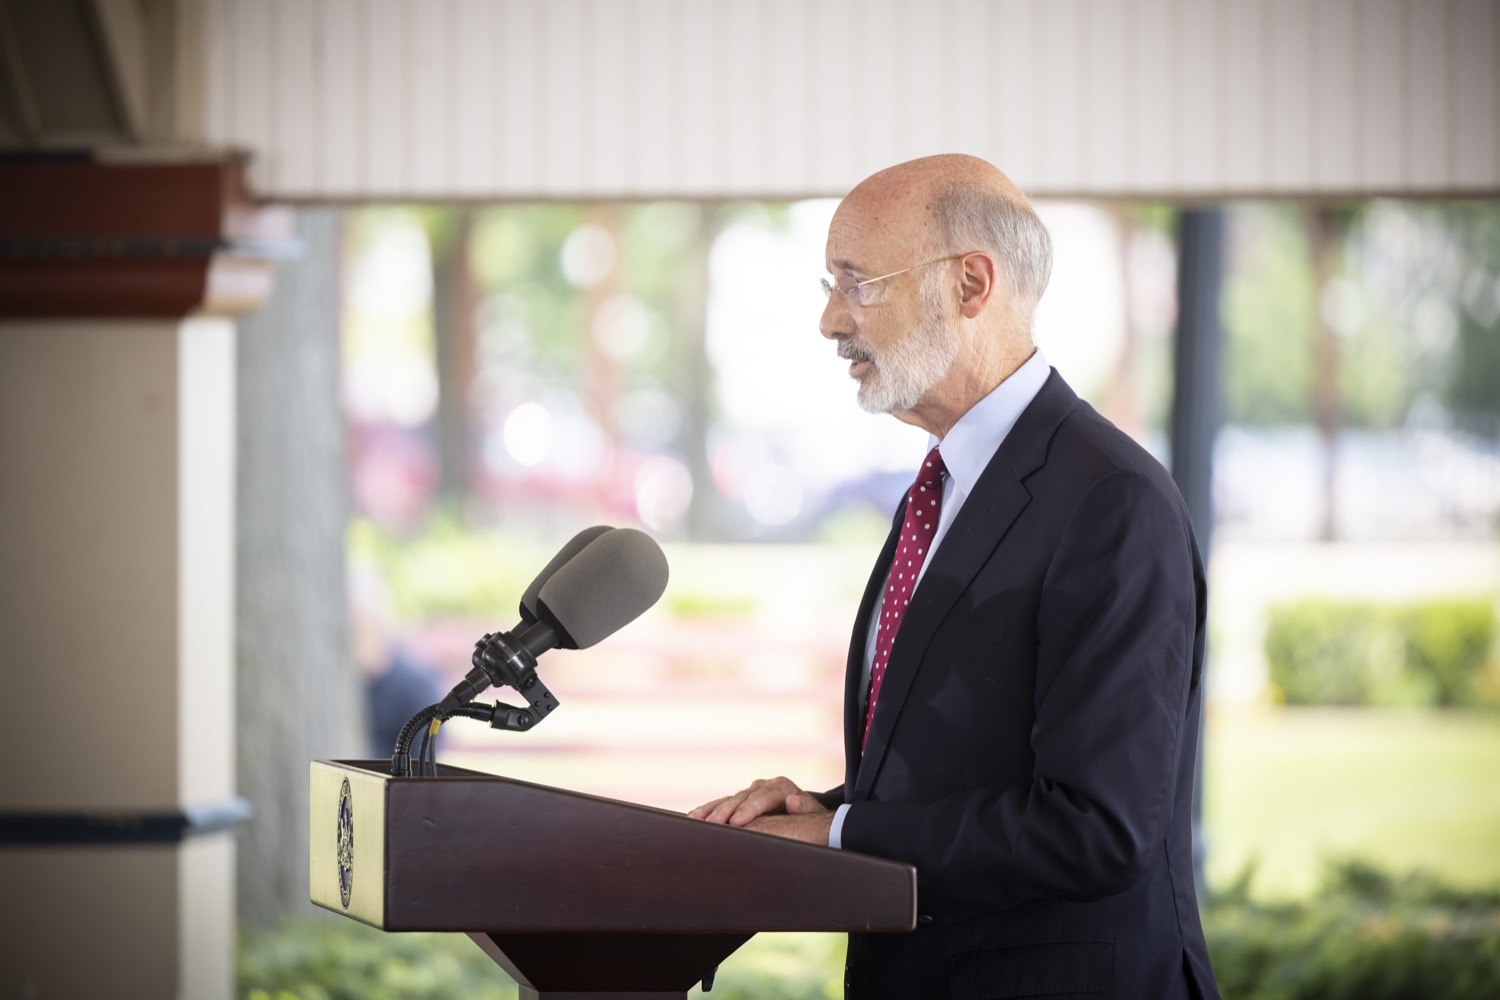 """<a href=""""https://filesource.wostreaming.net/commonwealthofpa/photo/18932_gov_chirp_dz_012.jpg"""" target=""""_blank"""">⇣Download Photo<br></a>Pennsylvania Governor Tom Wolf speaking with the press.  Governor Tom Wolf today joined the Pennsylvania Department of Community and Economic Development, Bucks County Commissioners, Bristol Borough Mayor Joseph Saxton, local lawmakers, Bucks County Economic Development Corporation, Visit Bucks County, the Bucks County Redevelopment Authority, and the owners of Itri Wood Fired to highlight the $7 million in grant funding provided to Bucks County restaurants through the COVID-19 Hospitality Industry Recovery Program(CHIRP).  JULY 16, 2021 - BRISTOL, PA"""